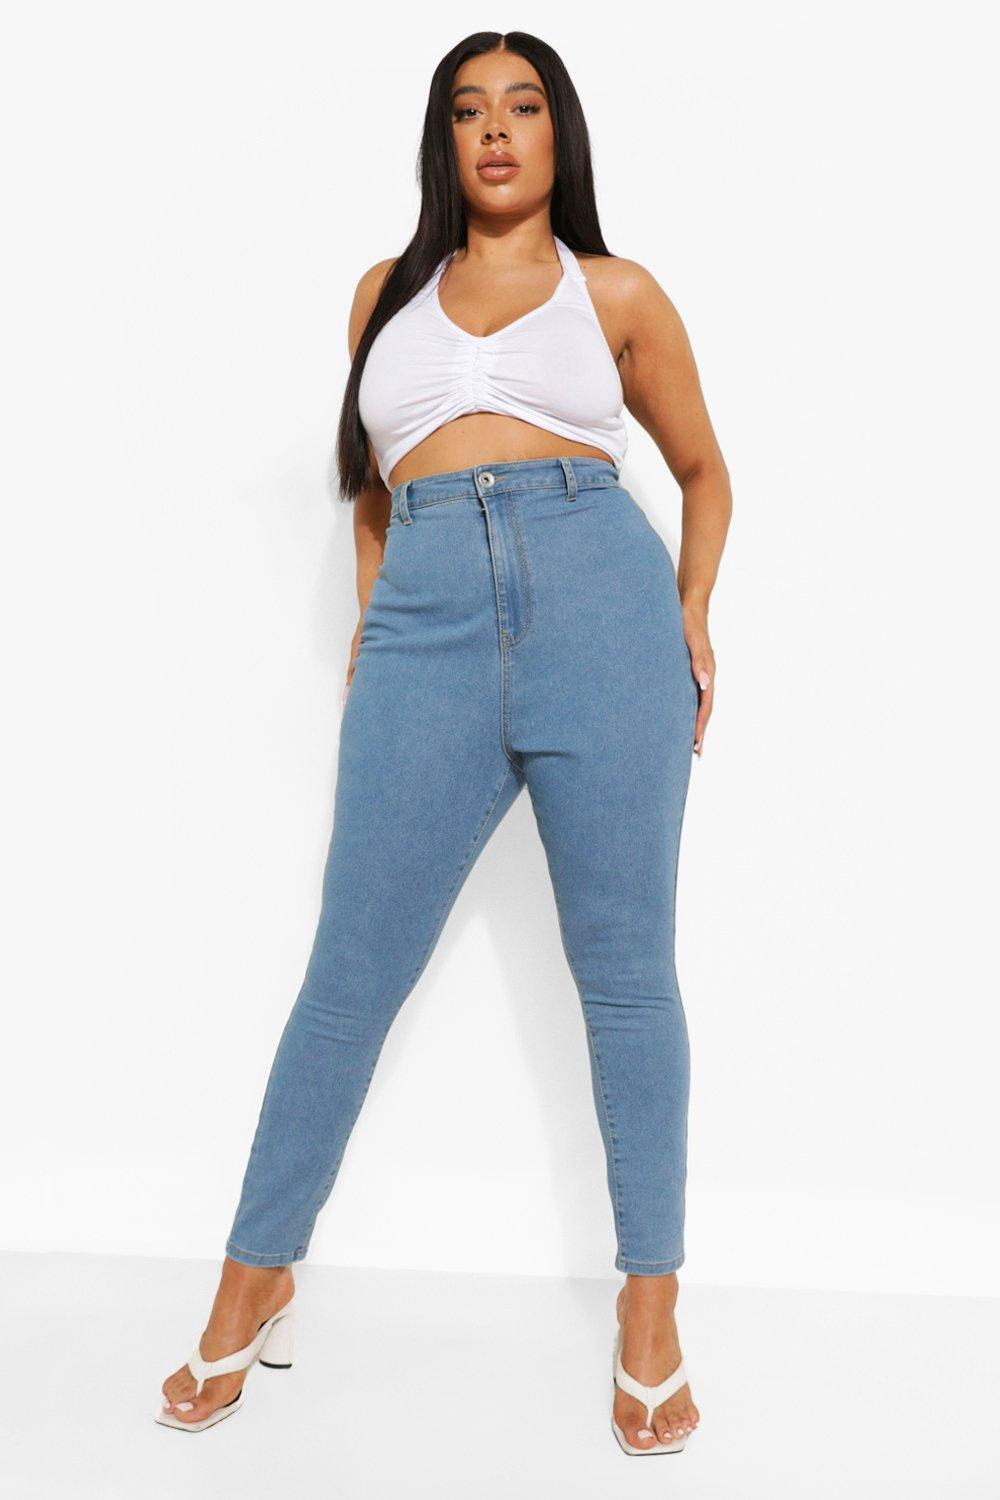 1980s Clothing, Fashion | 80s Style Clothes Womens Plus High Rise Disco Jean - Blue - 16 $15.00 AT vintagedancer.com